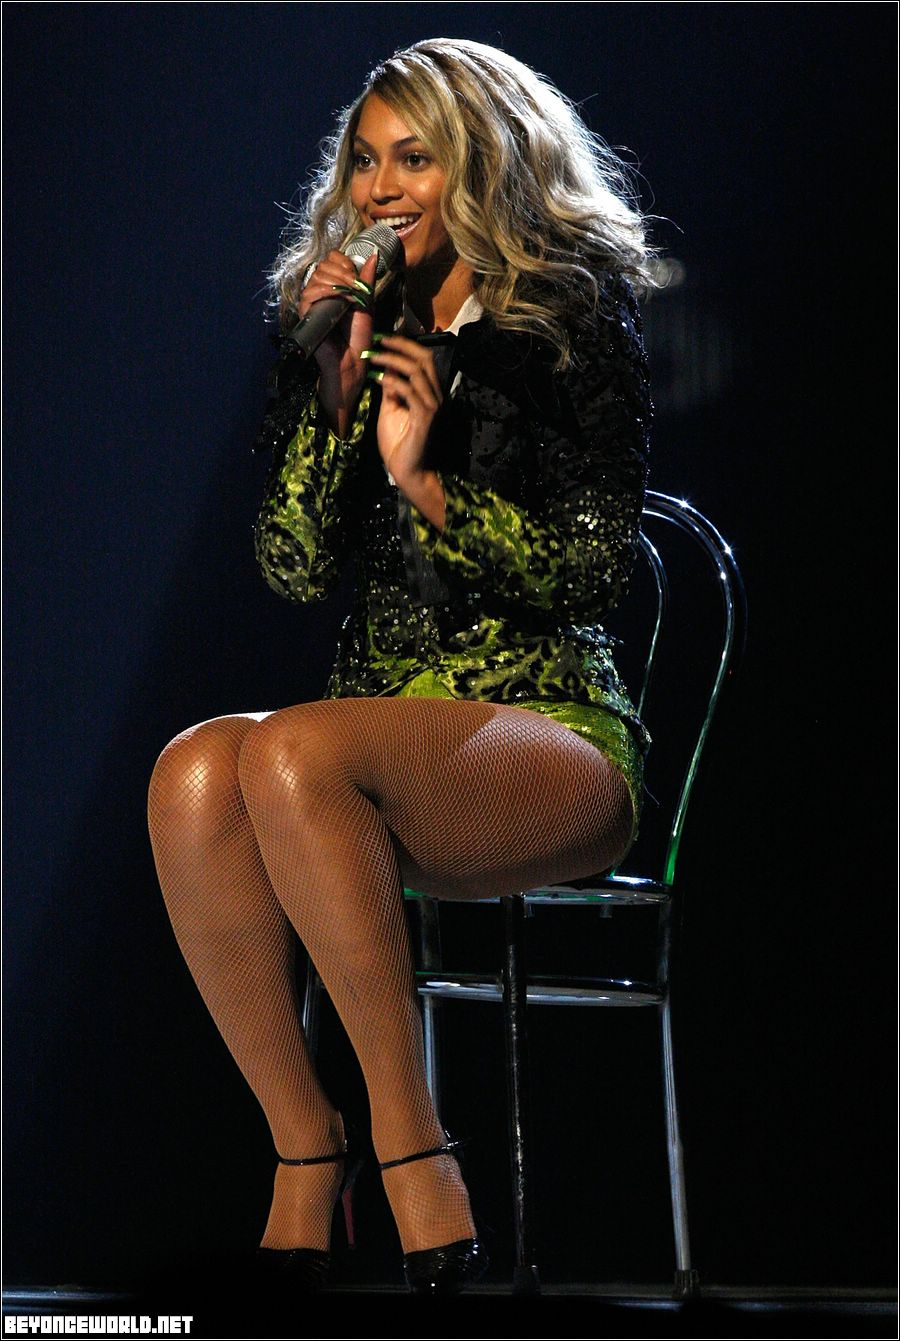 Well understand Beyonce sexy legs and thighs have hit